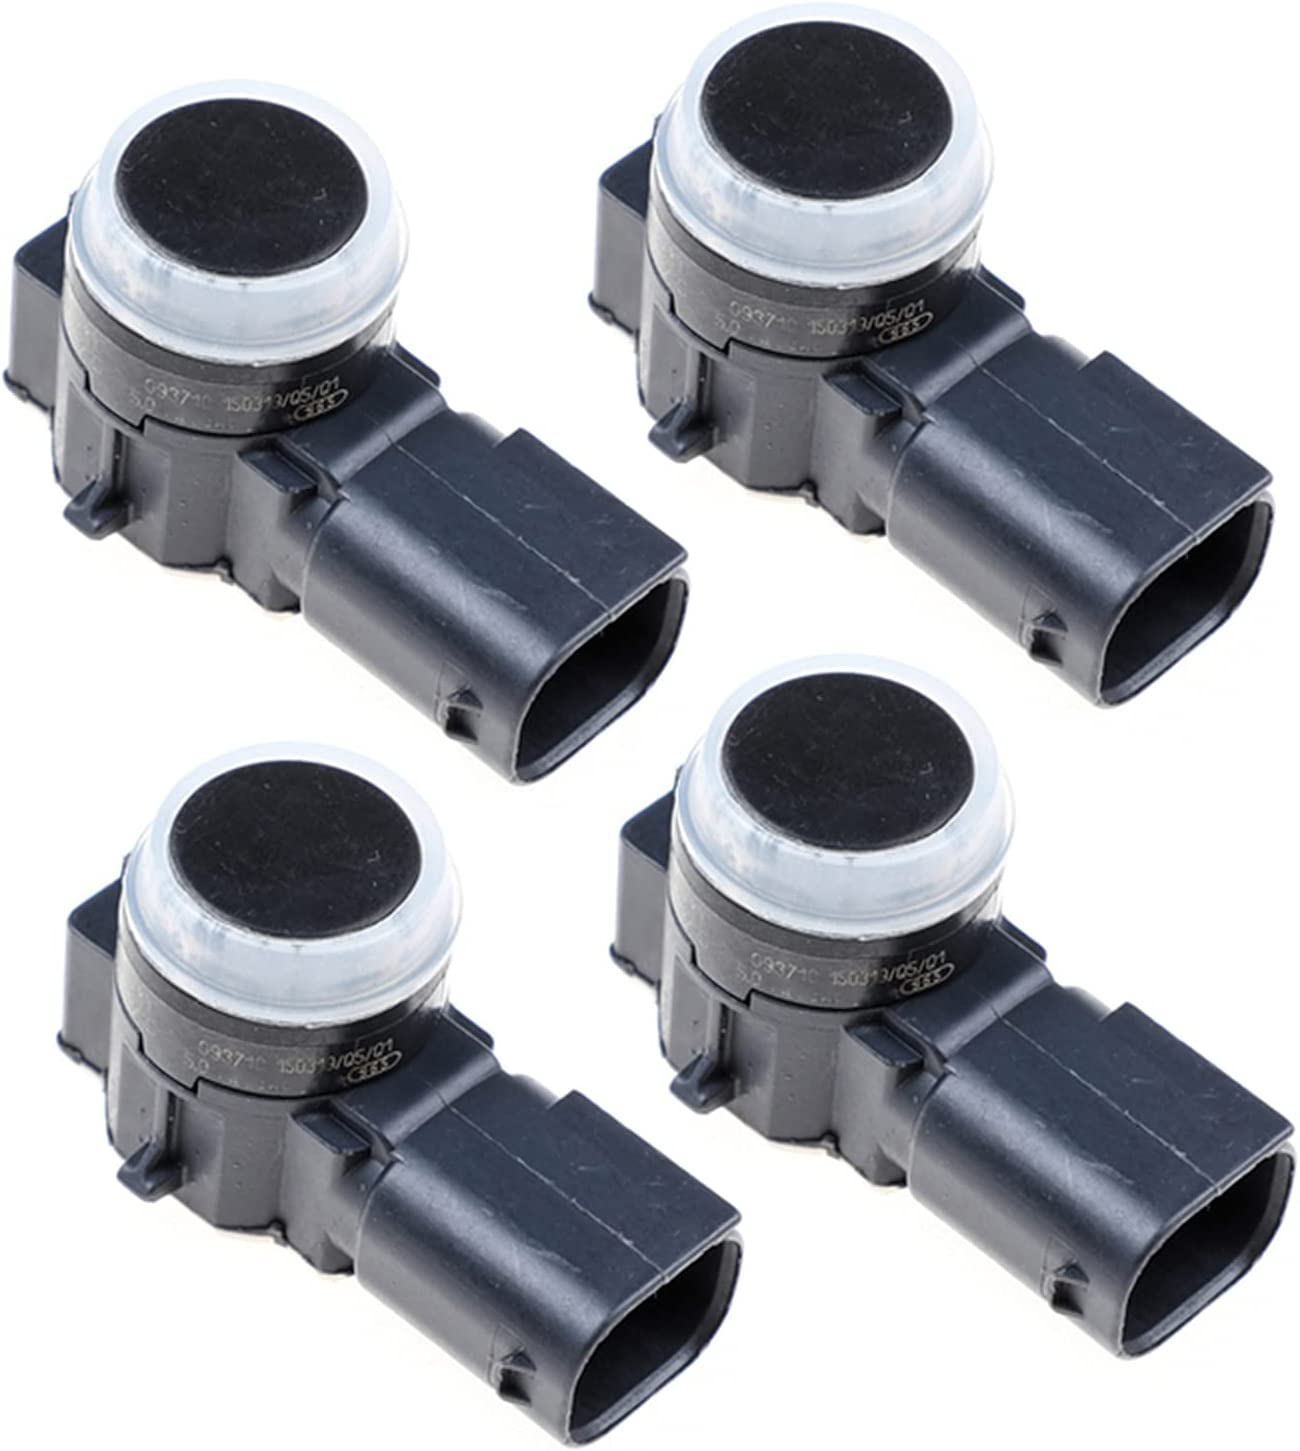 Lyqfff for Citroen 67% OFF of 4 years warranty fixed price C4 Peugeot 2008 lot 4 Pcs 5008 3008 308